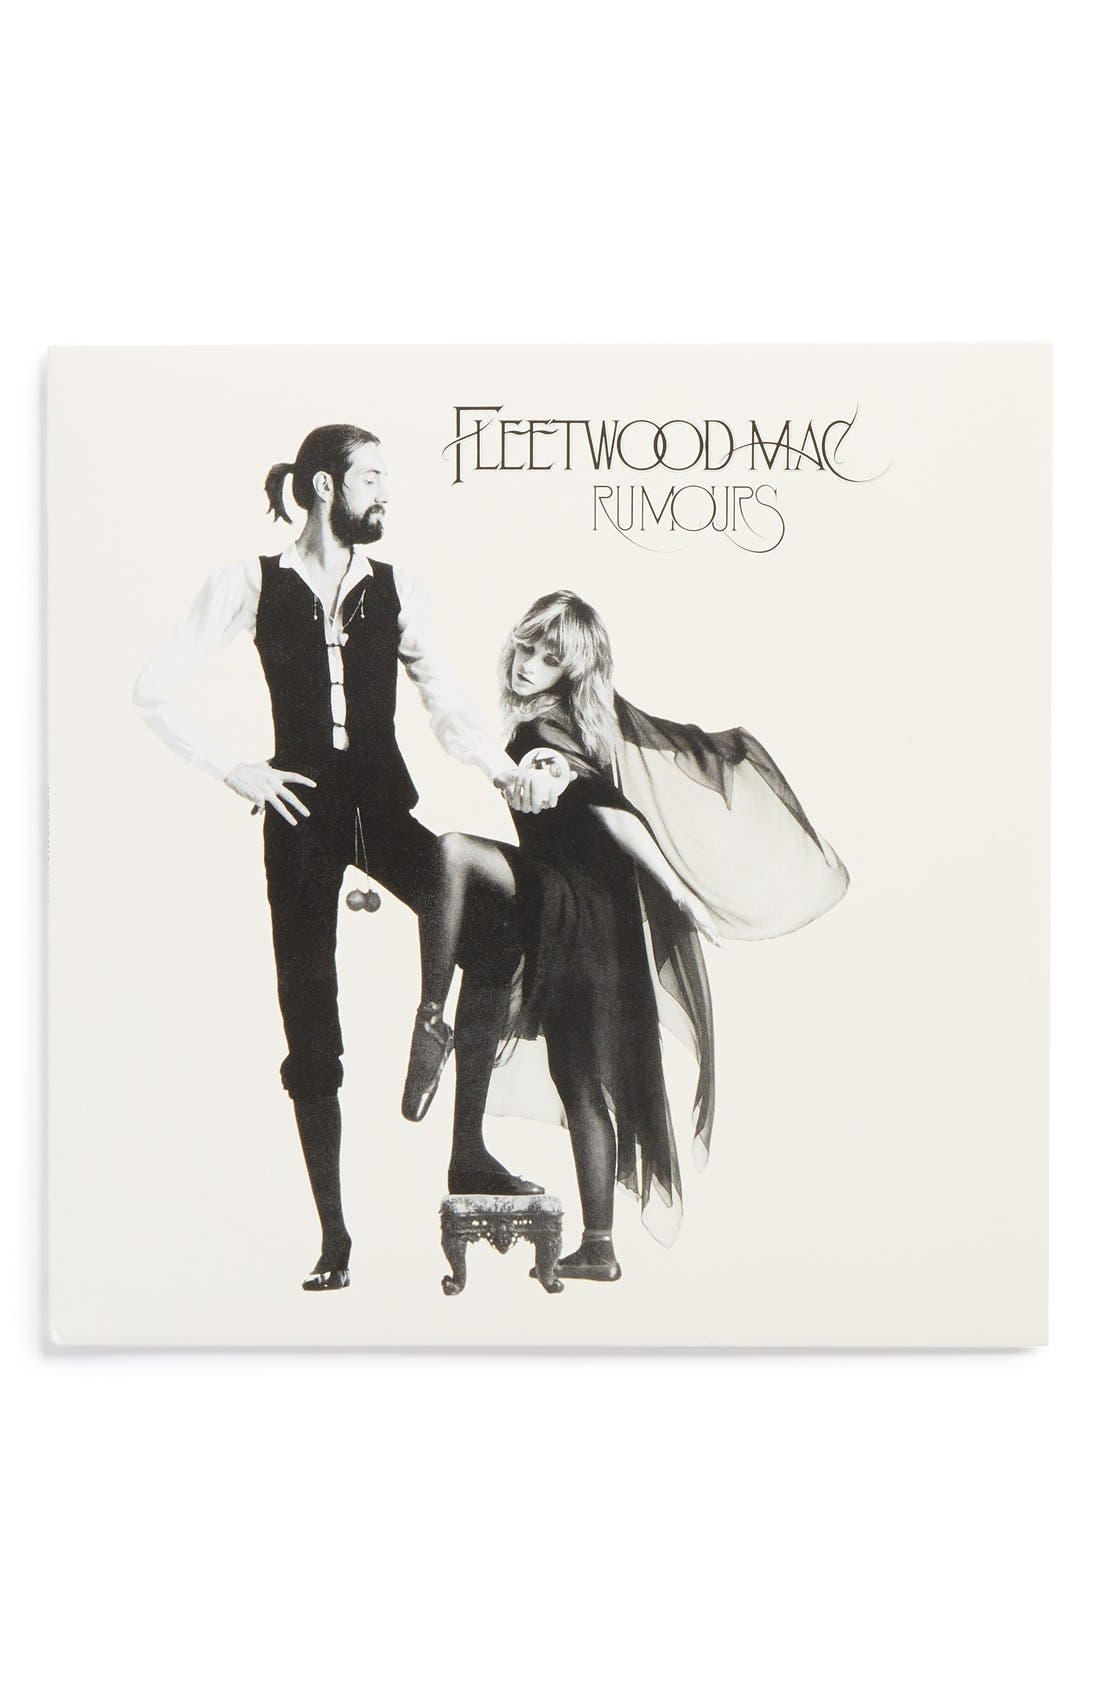 Alternate Image 1 Selected - Fleetwood Mac 'Rumours' LP Vinyl Record